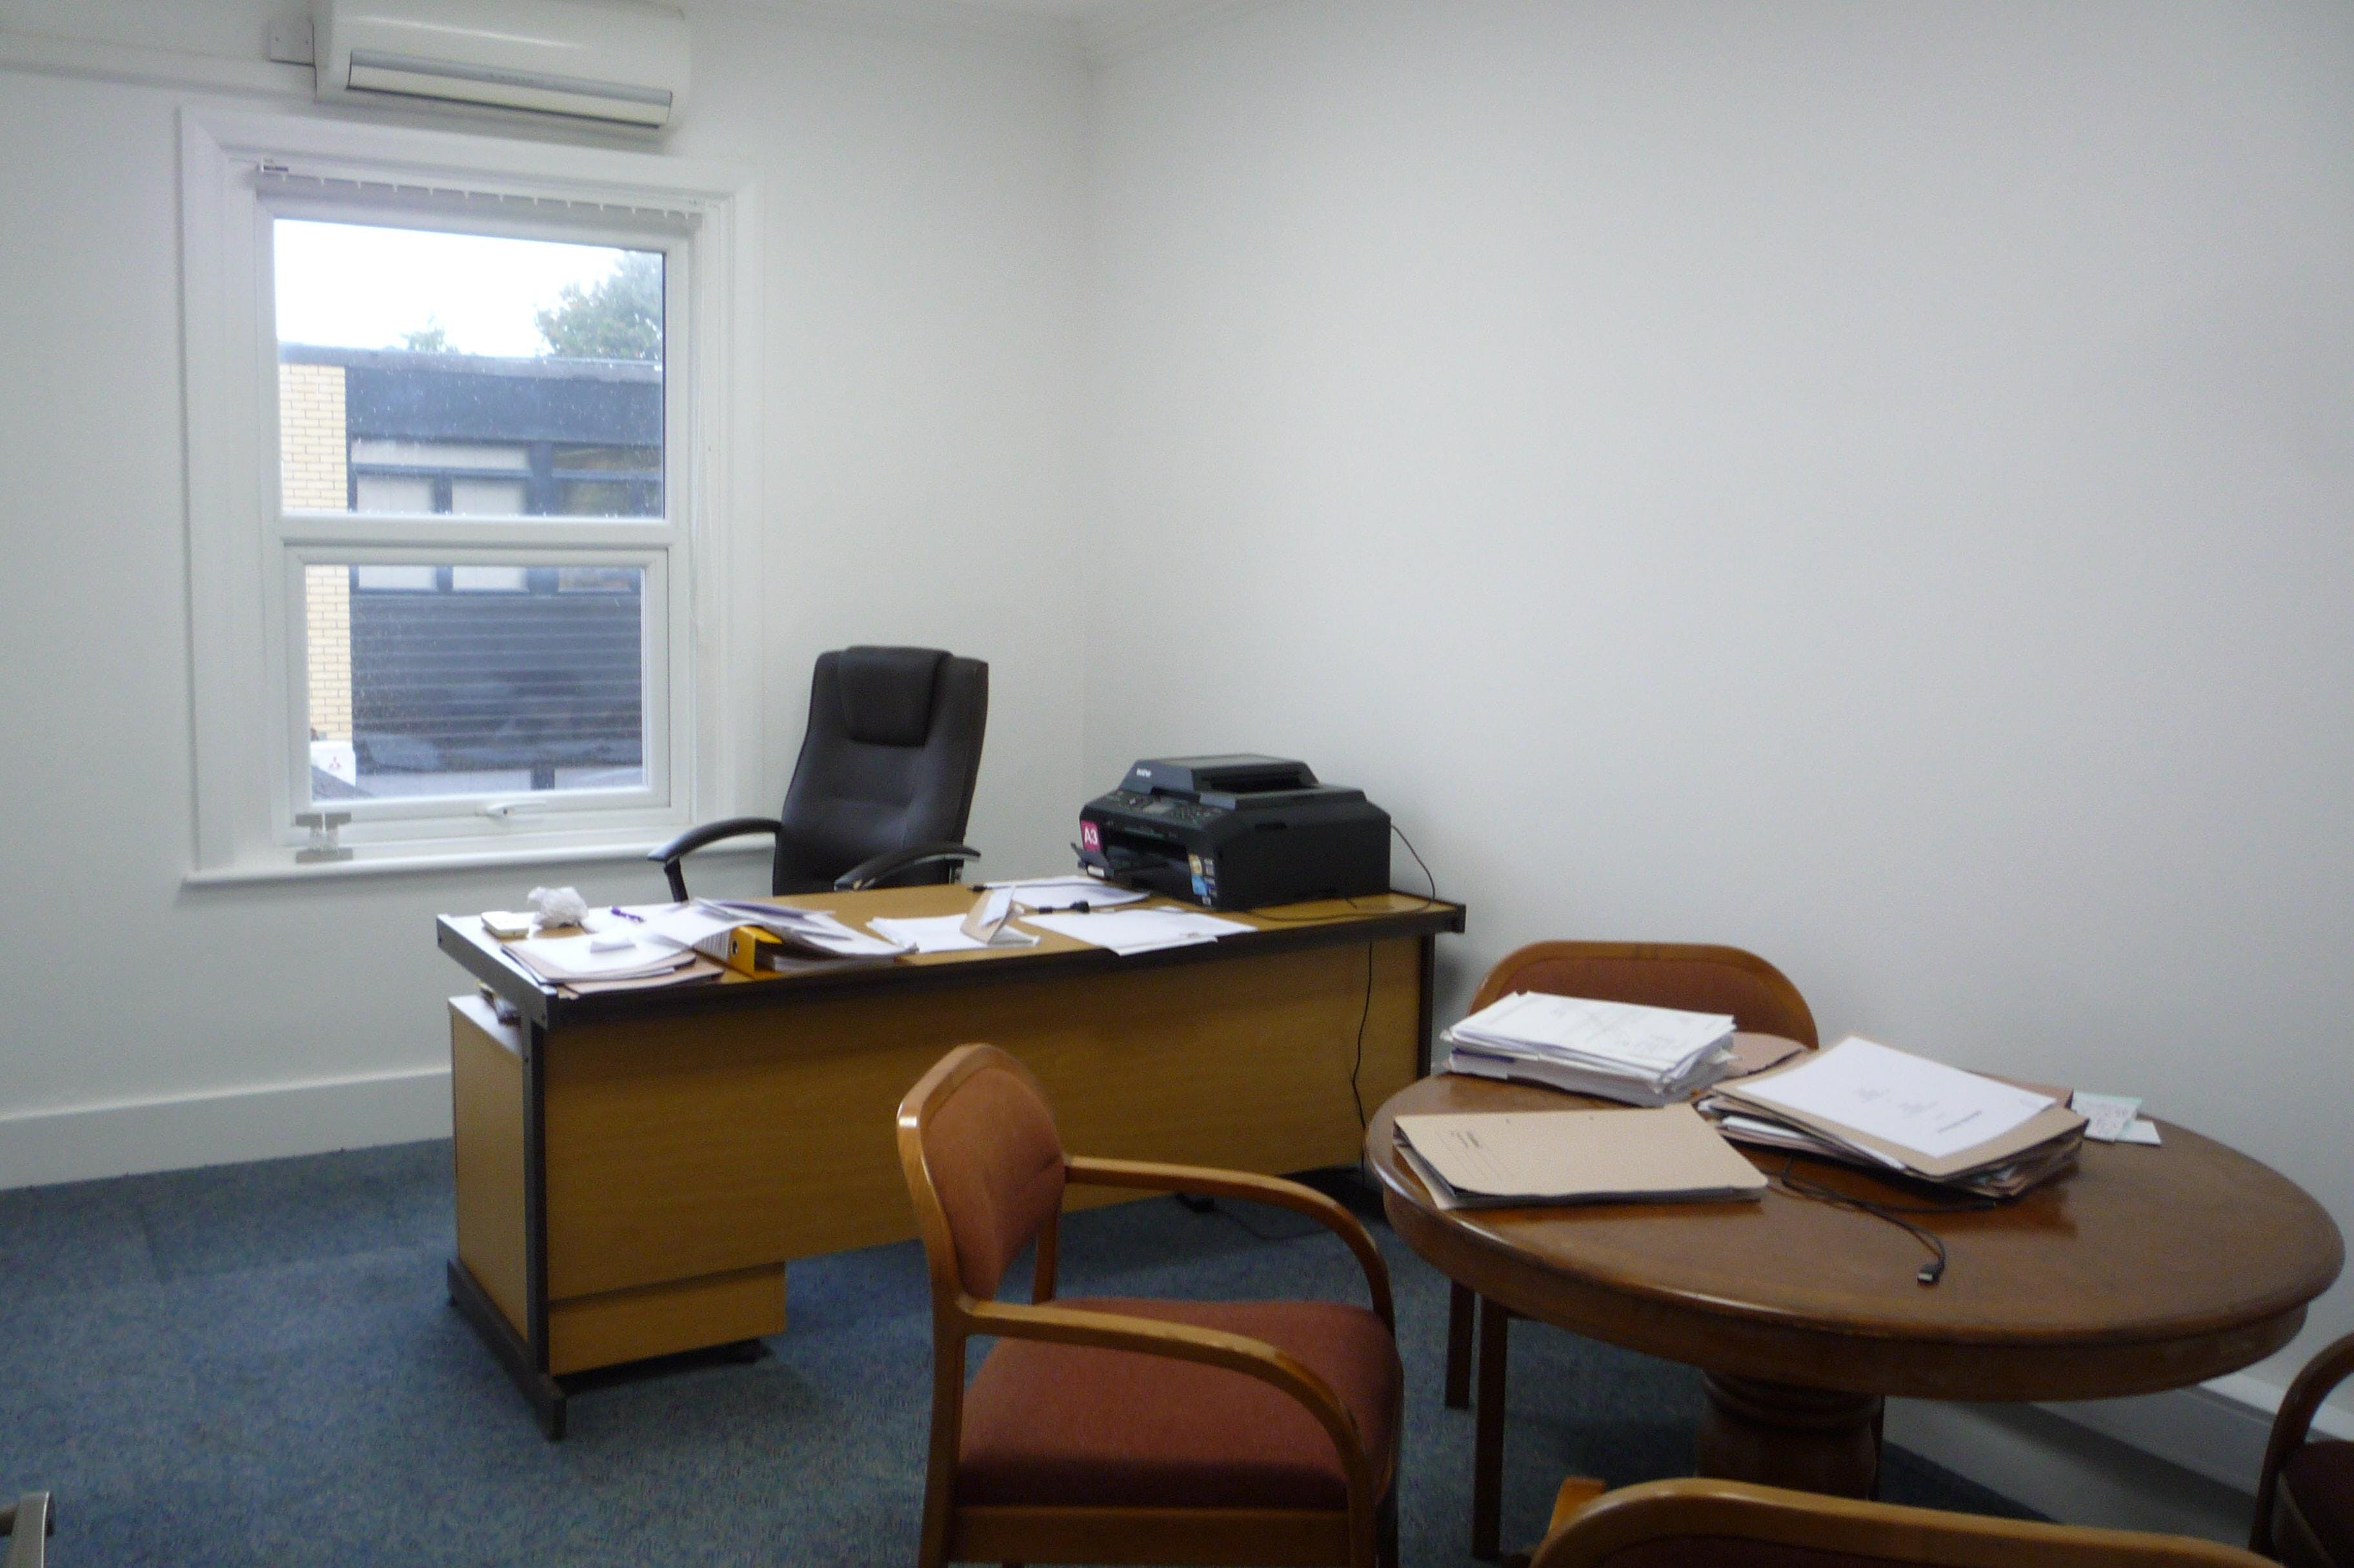 30 Reading Road South, Fleet, Office To Let - P1040346.JPG